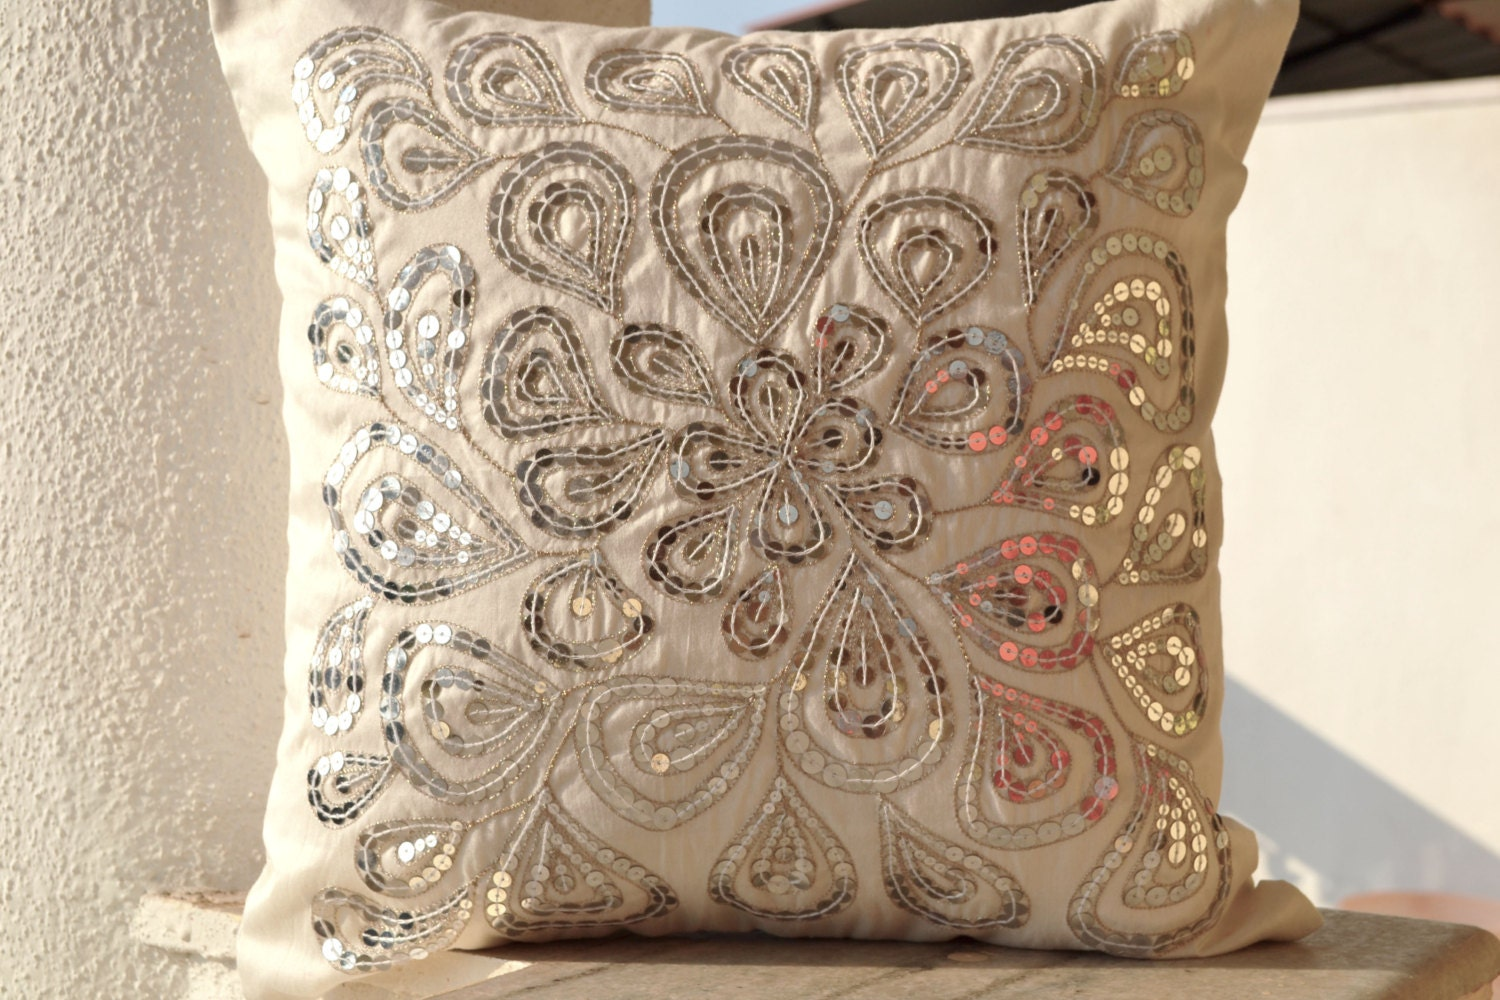 Decorative Pillows With Sequins : Ivory white throw pillows with silver sequins Dazzling pillow